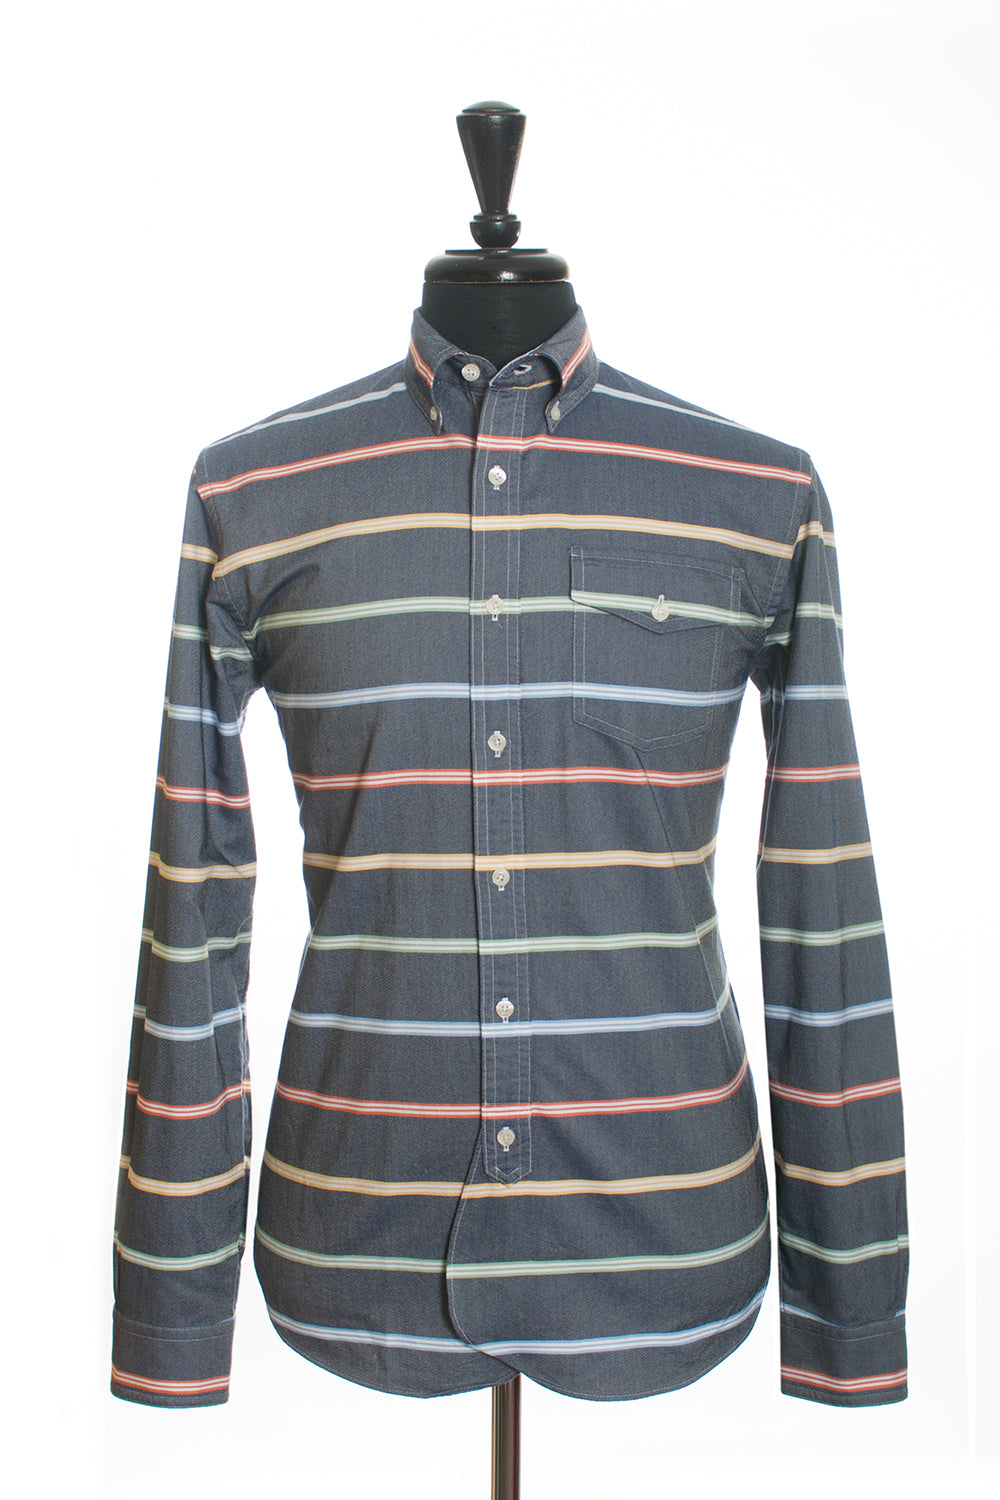 Brooks Brothers Grey Striped Sports Shirt. Luxmrkt.com Menswear Consignment Edmonton.